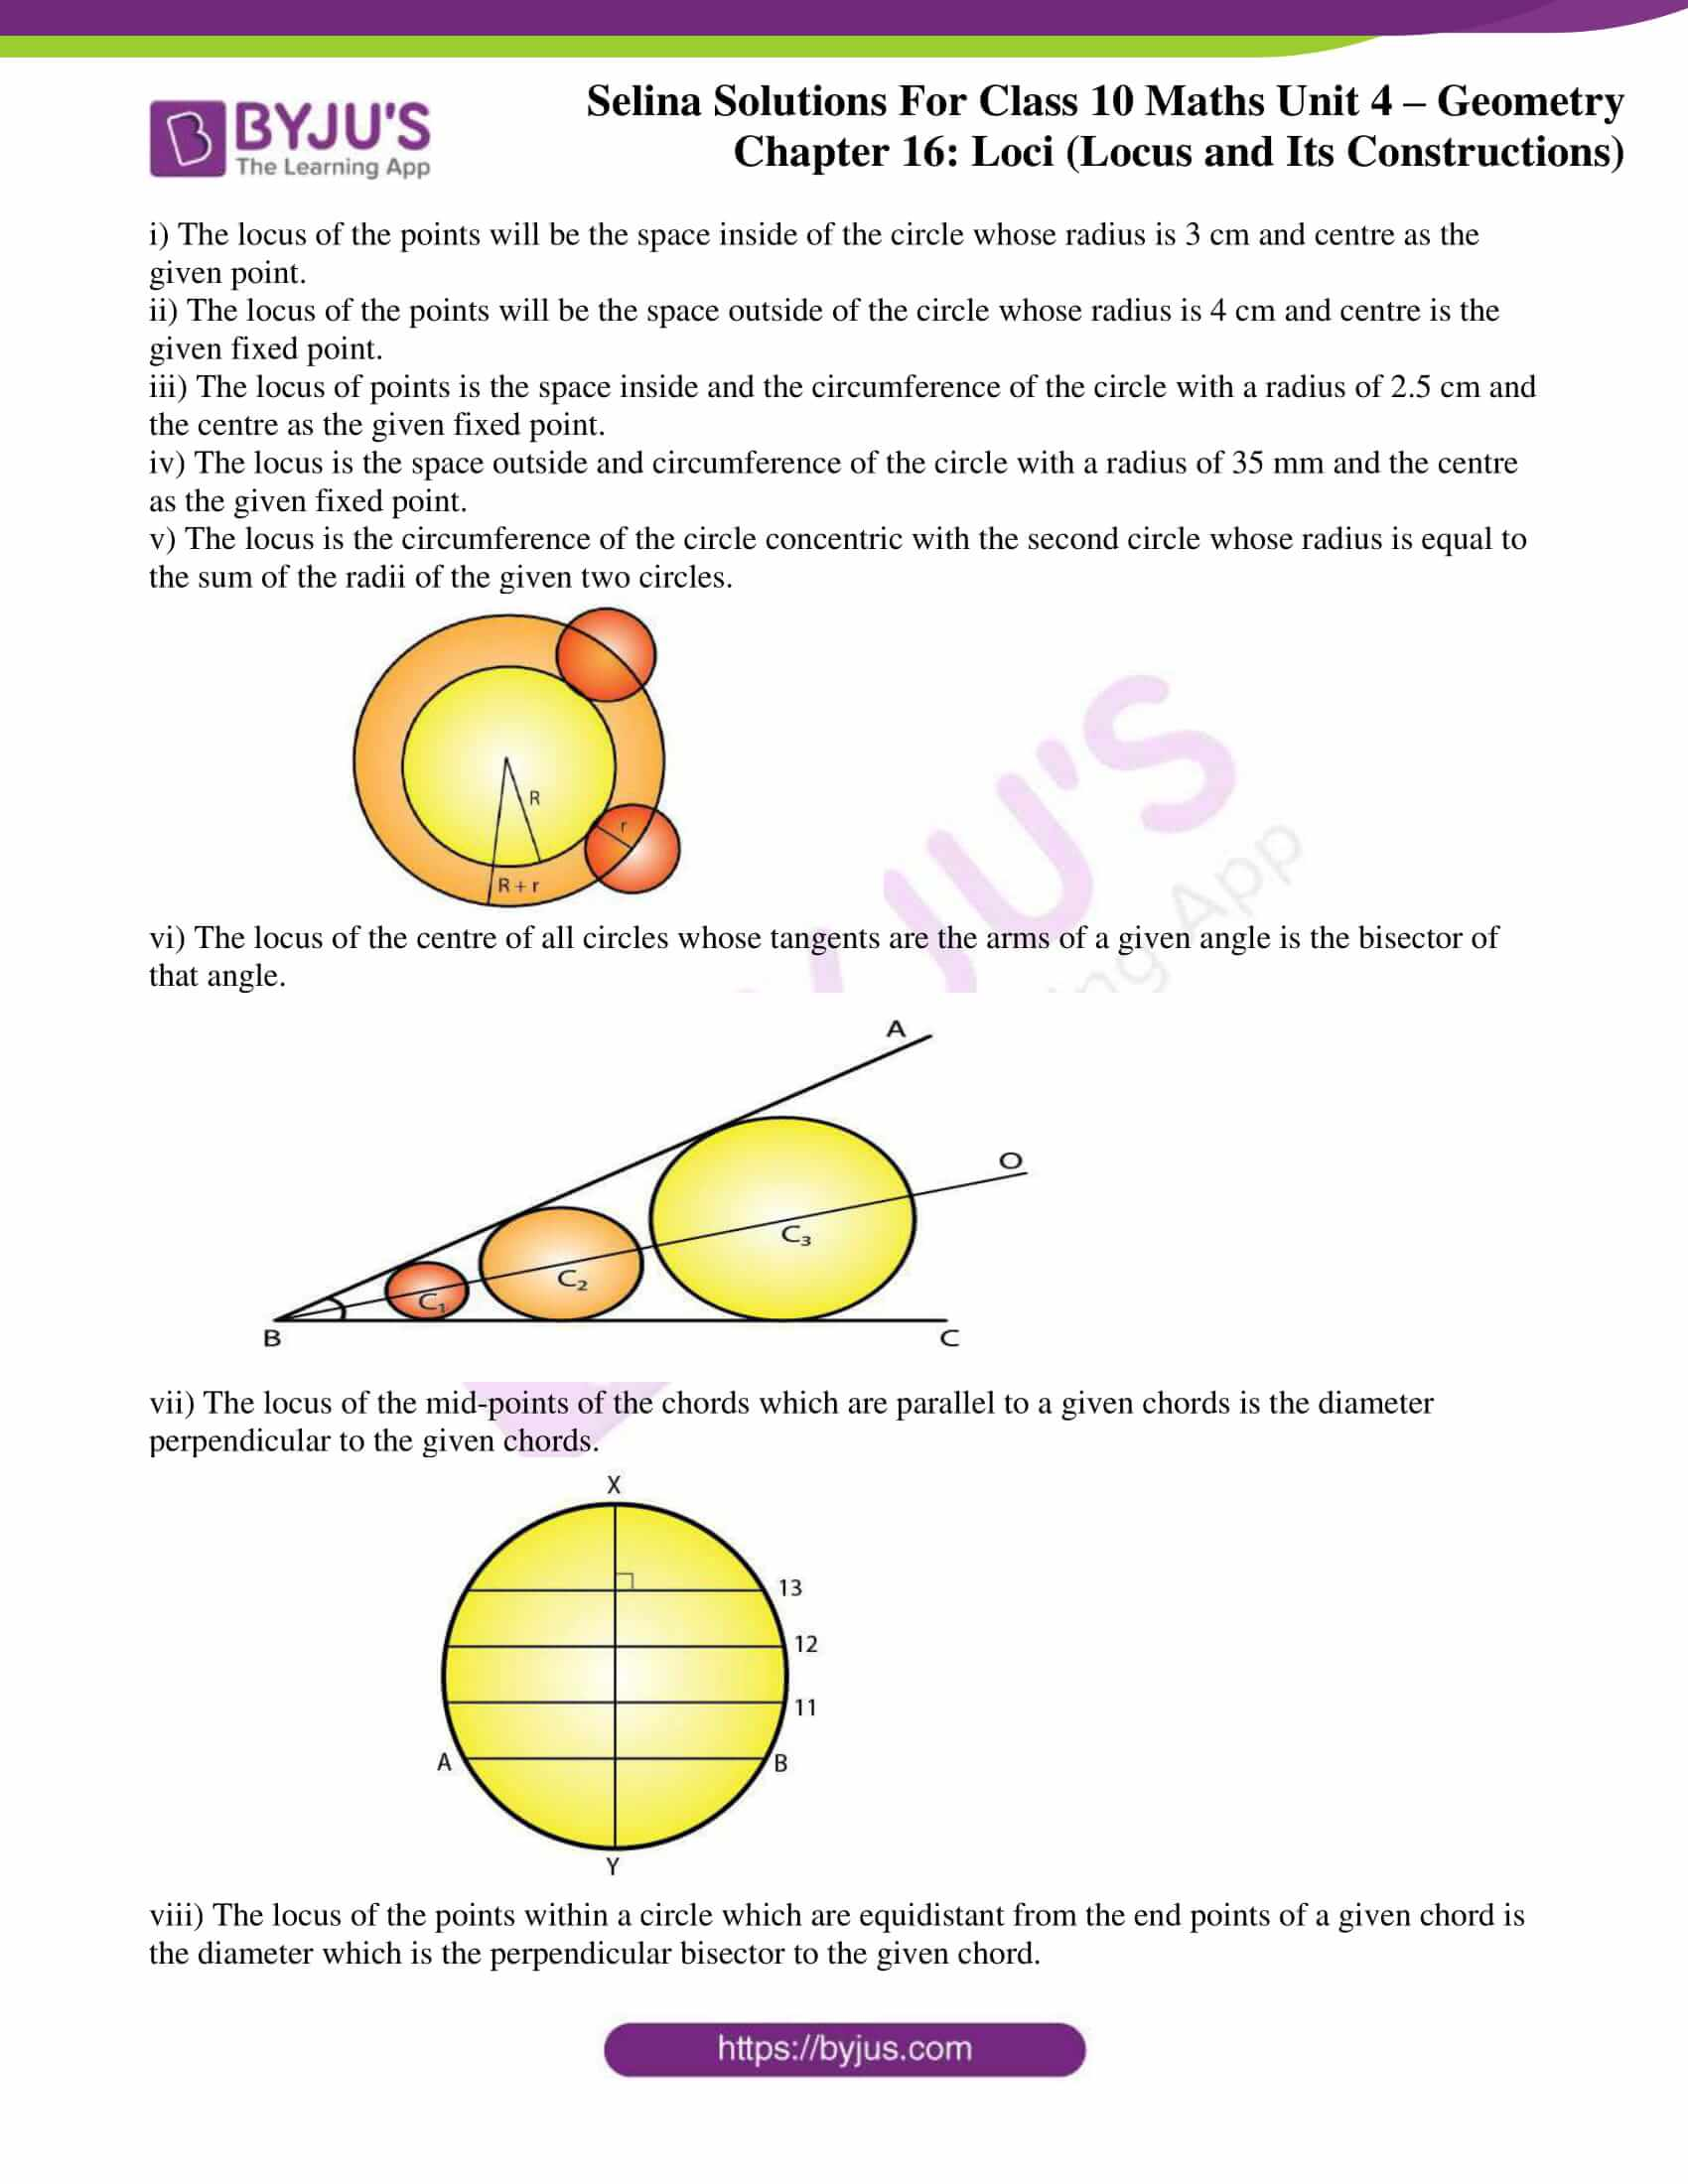 selina solution concise maths class 10 chapter 16 ex b 6